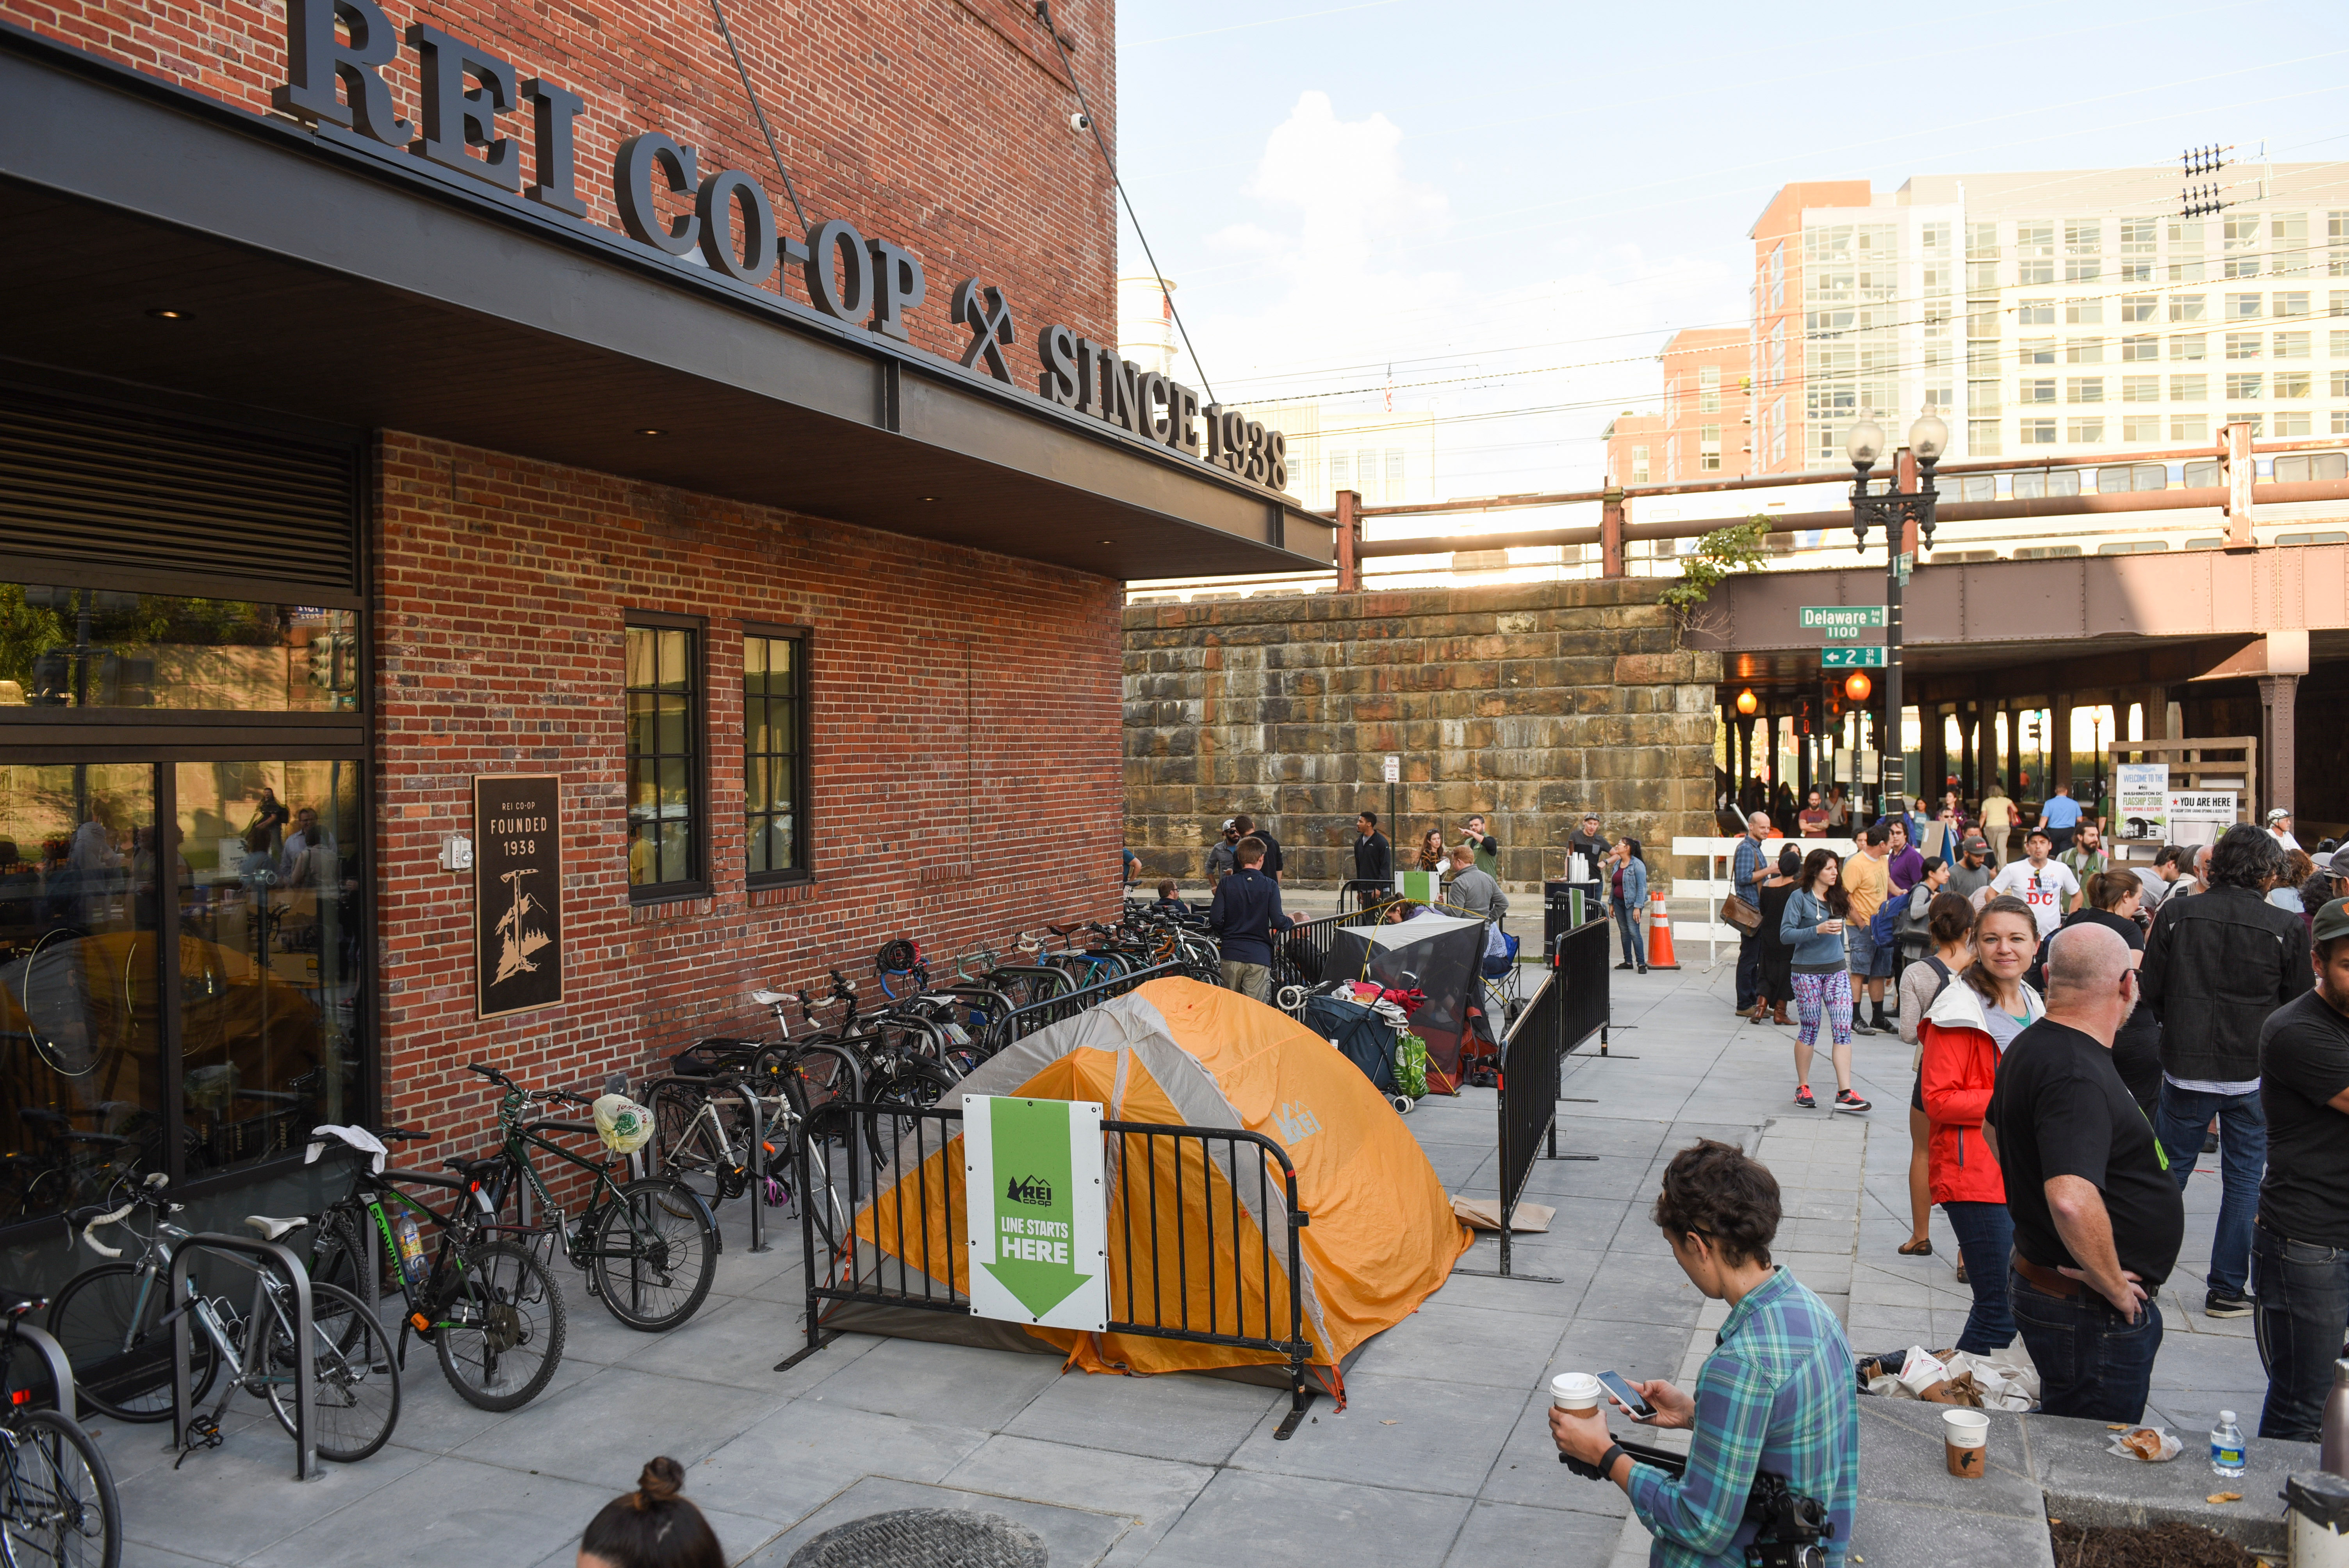 Outdoor enthusiasts camp and line up for the REI DC Flagship Grand Opening & Block Party on in Washington, D.C. REI, a national outdoor co-op, opened in the historic Washington U-line ArenaREI DC Flagship Grand Opening, Washington, USA - 21 Oct 2016